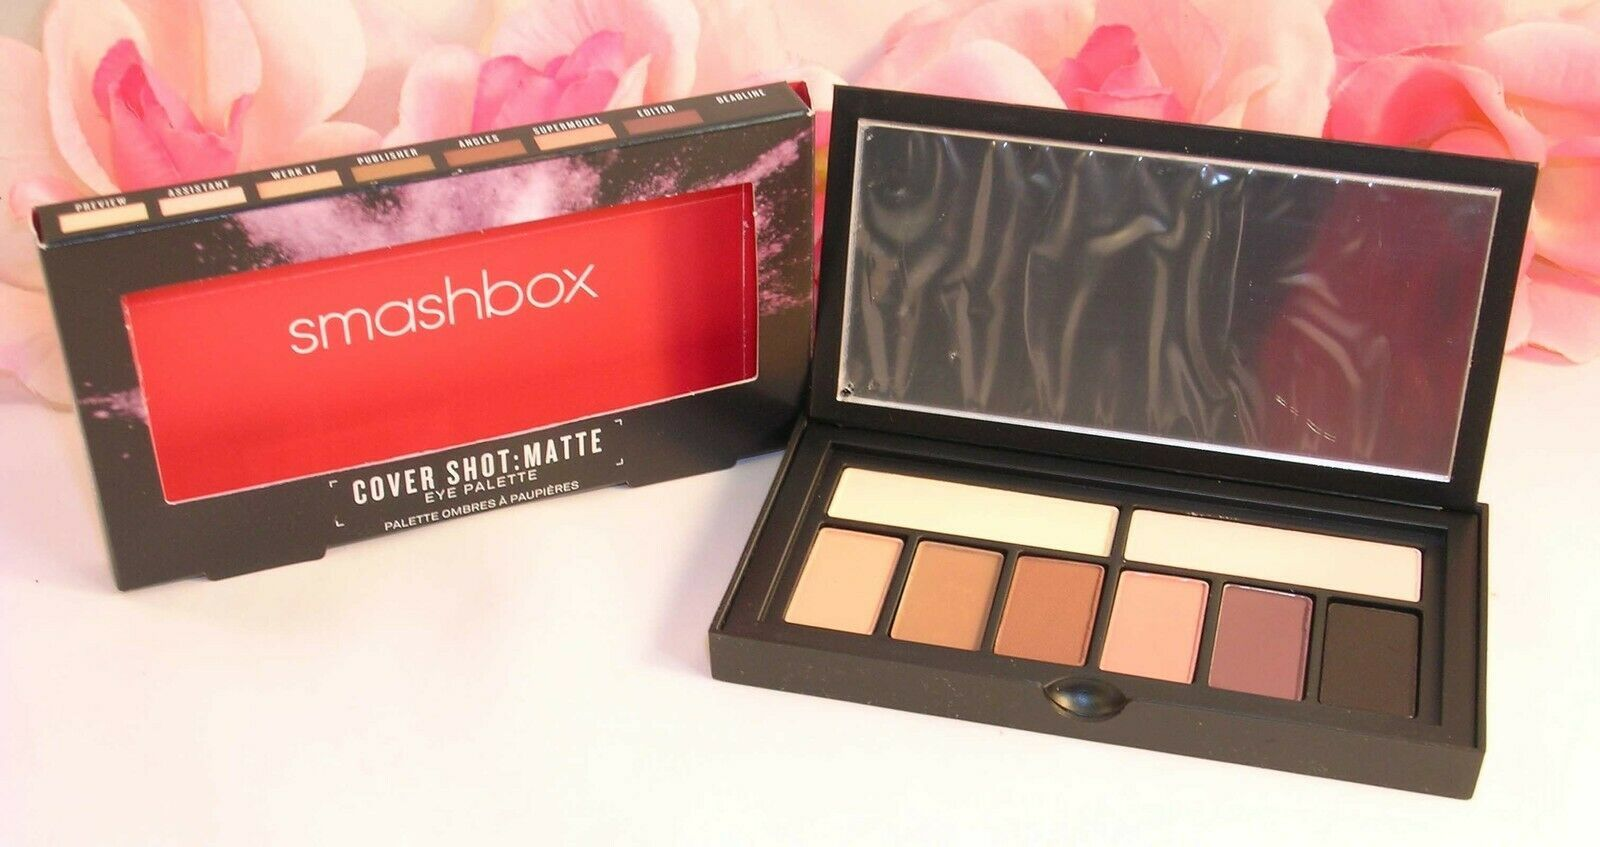 Primary image for New Smashbox Cover Shot Matte Eye Shadow Palette 8 Shades .27 oz / 7.8 g